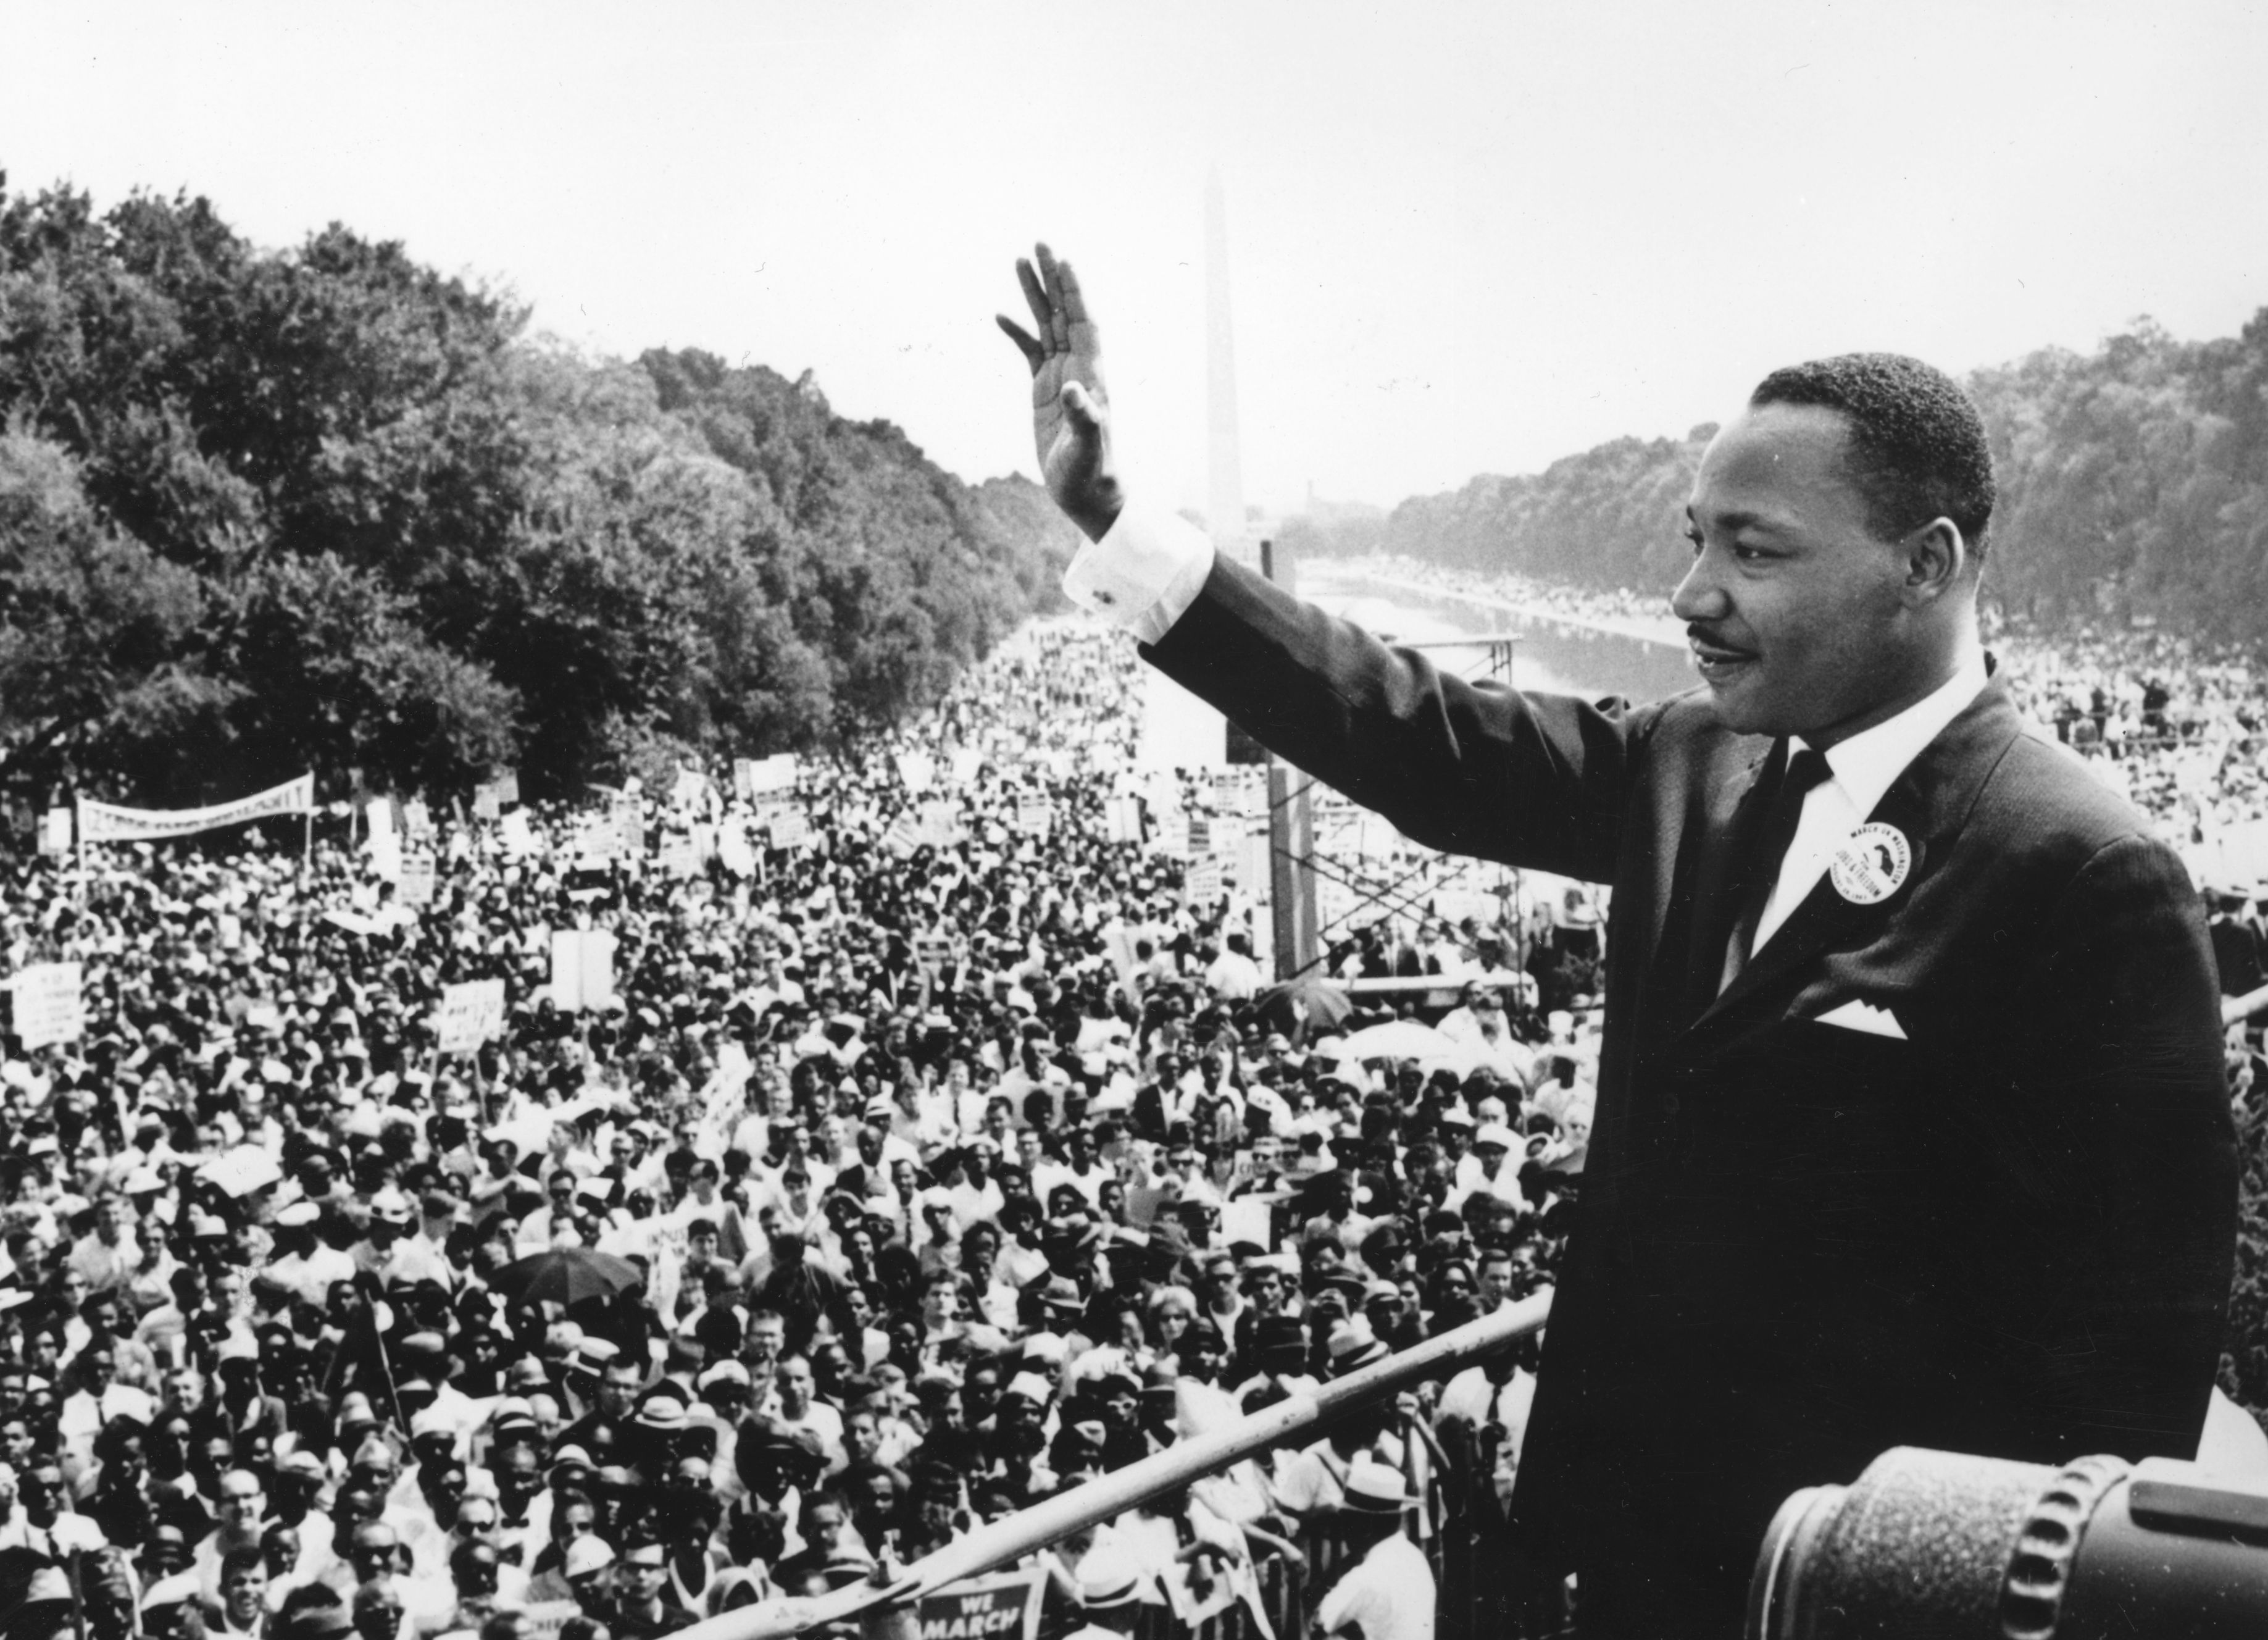 MLK Day 2020: What's open, closed on Martin Luther King Jr. Day Monday? Banks, stores, more